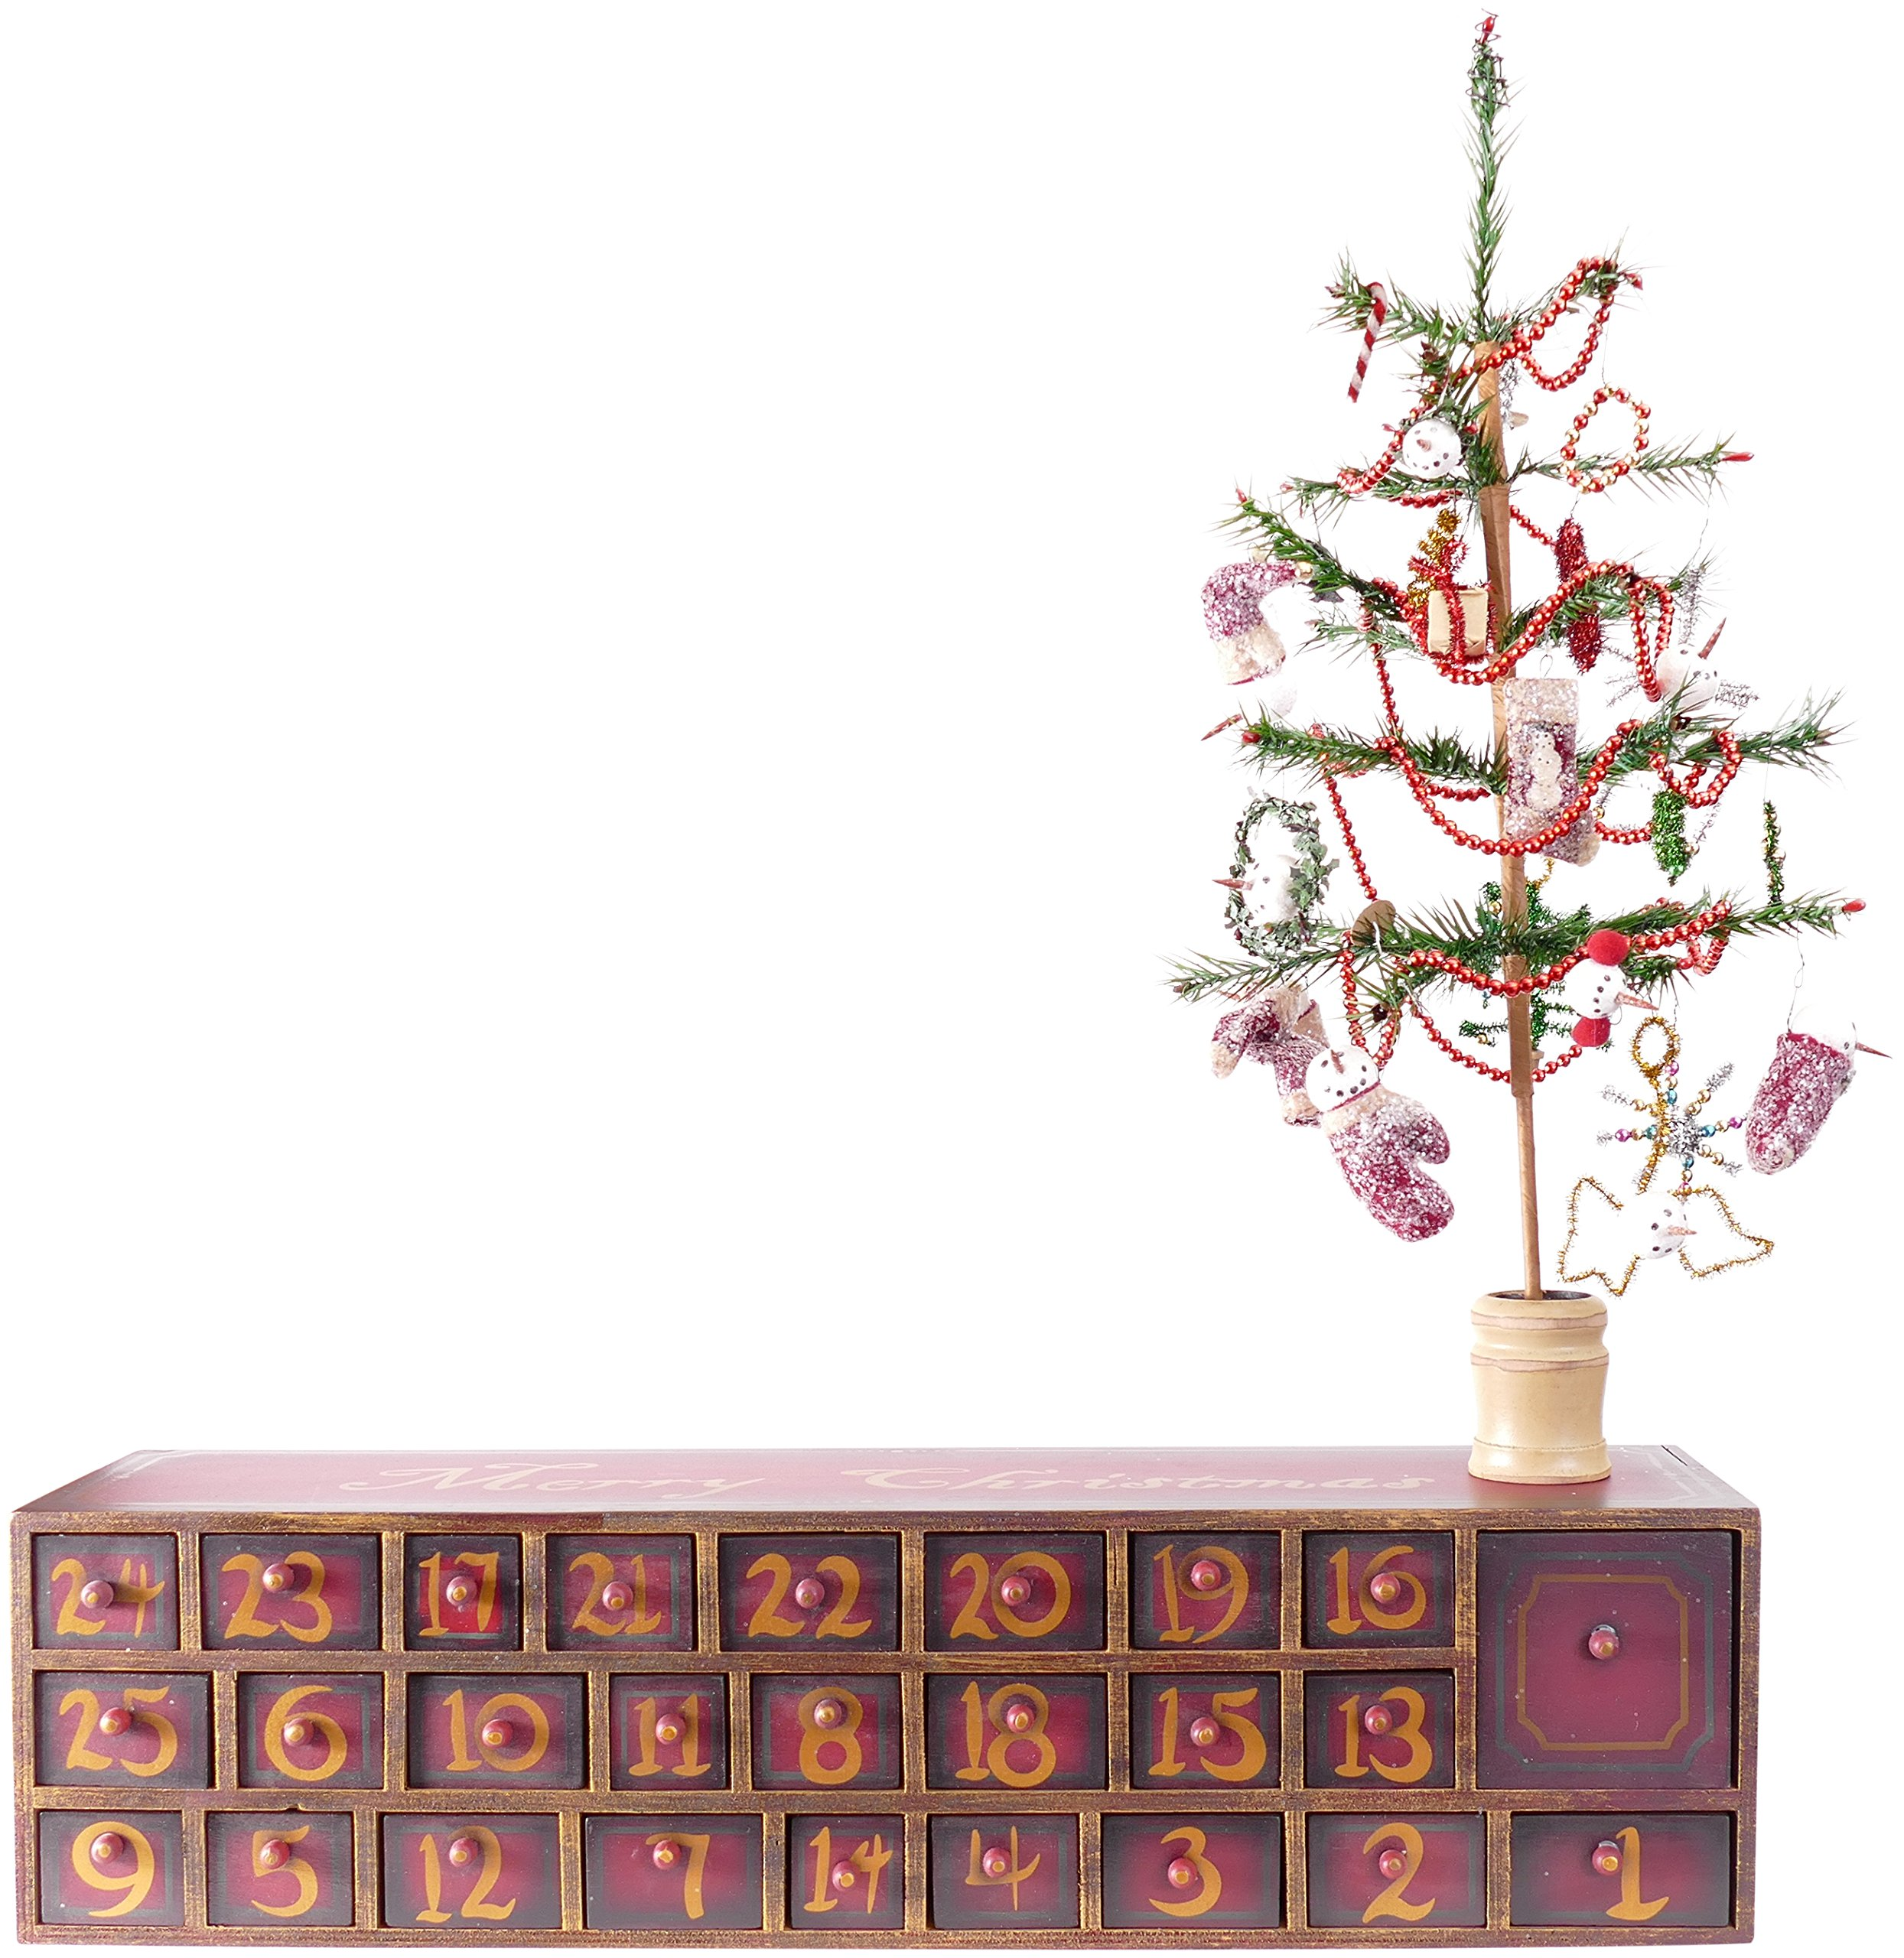 Vintage Snowman Wooden Advent Calendar With Drawers, Tree and Ornaments from Primitives by Kathy by Primitives by Kathy